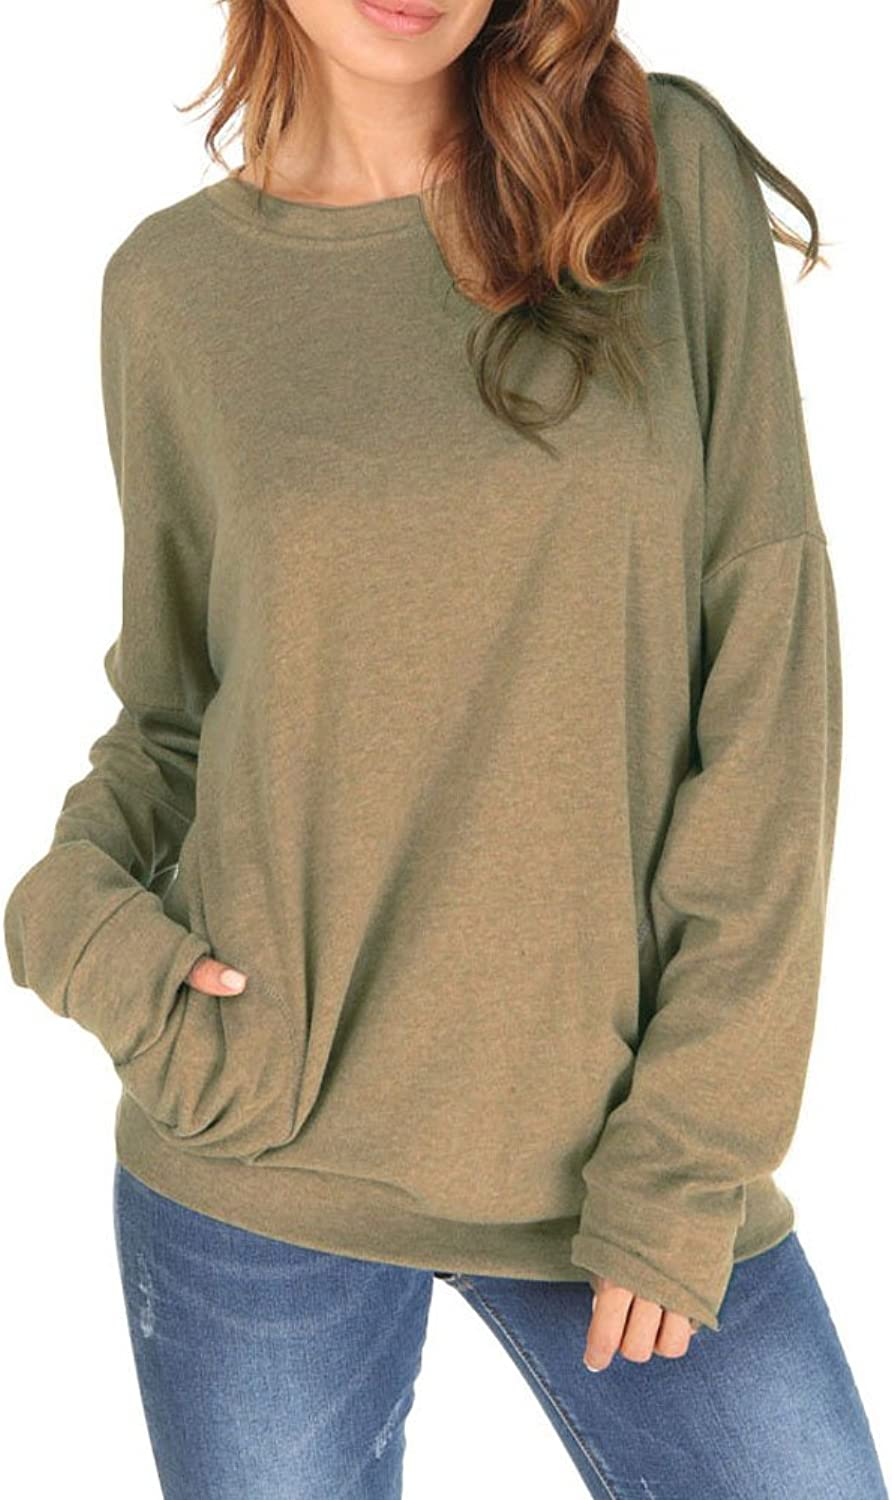 Dasbayla Women Casual Long Sleeve Blouse Top Oversize Sweatershirt with Pockets